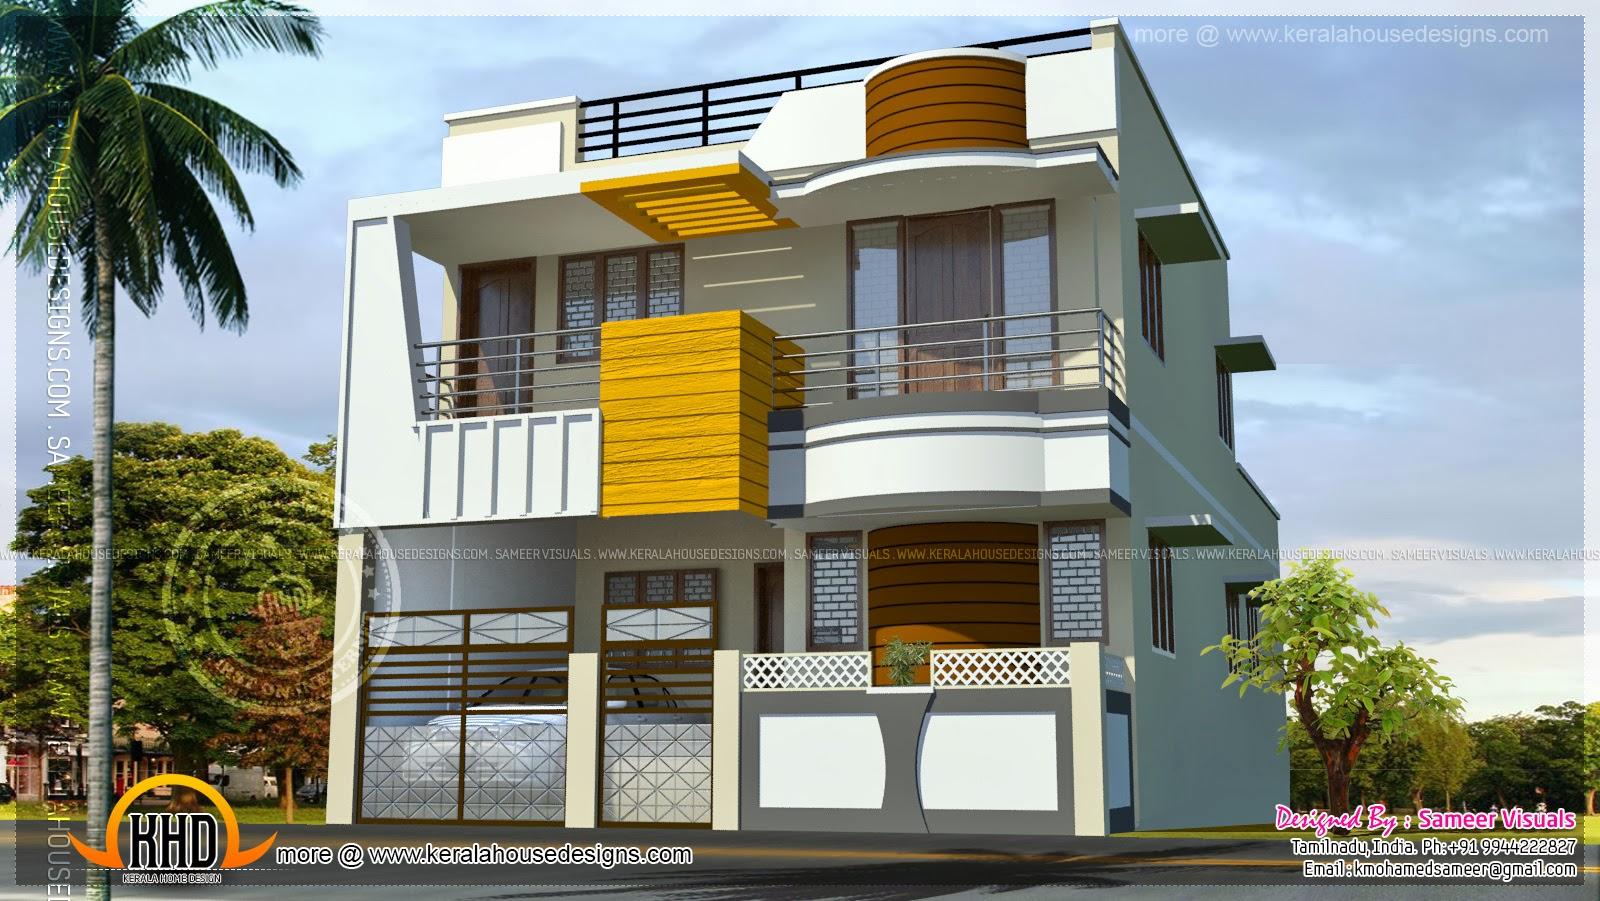 Double storied modern south indian home kerala home for Modern home design in india